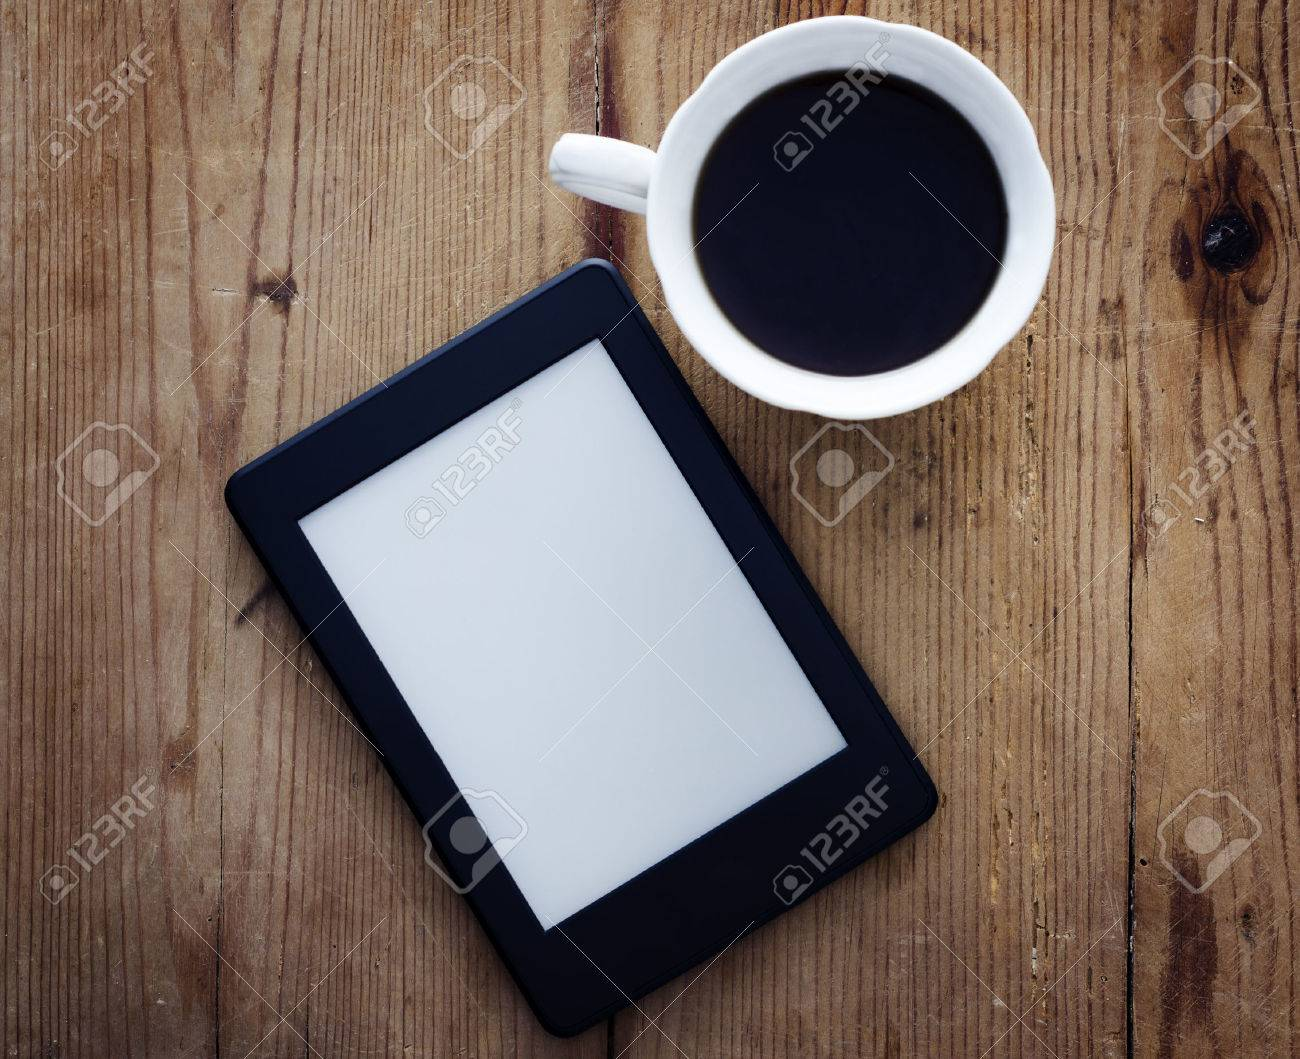 E-book reader and coffee cup on wooden table - 27742055